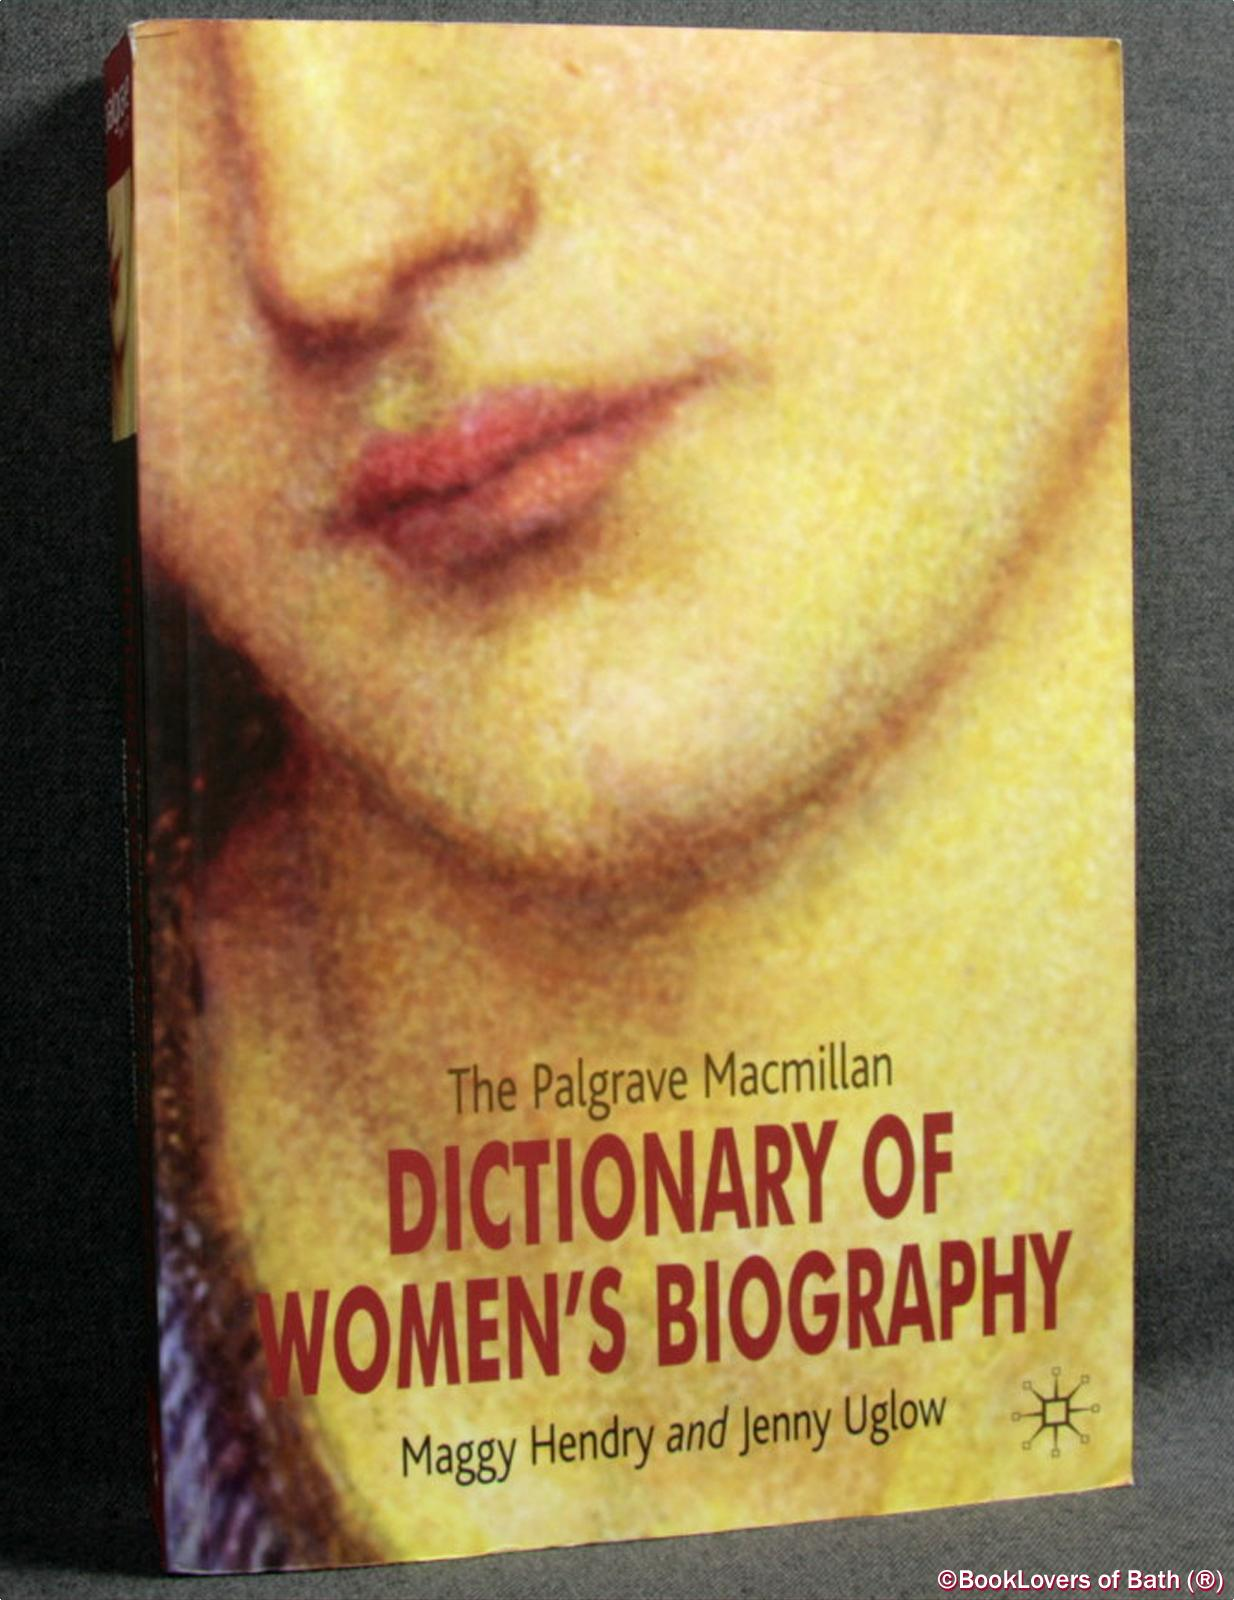 The Palgrave Macmillan Dictionary of Women's Biography - Maggy Hendry & Jenny Uglow